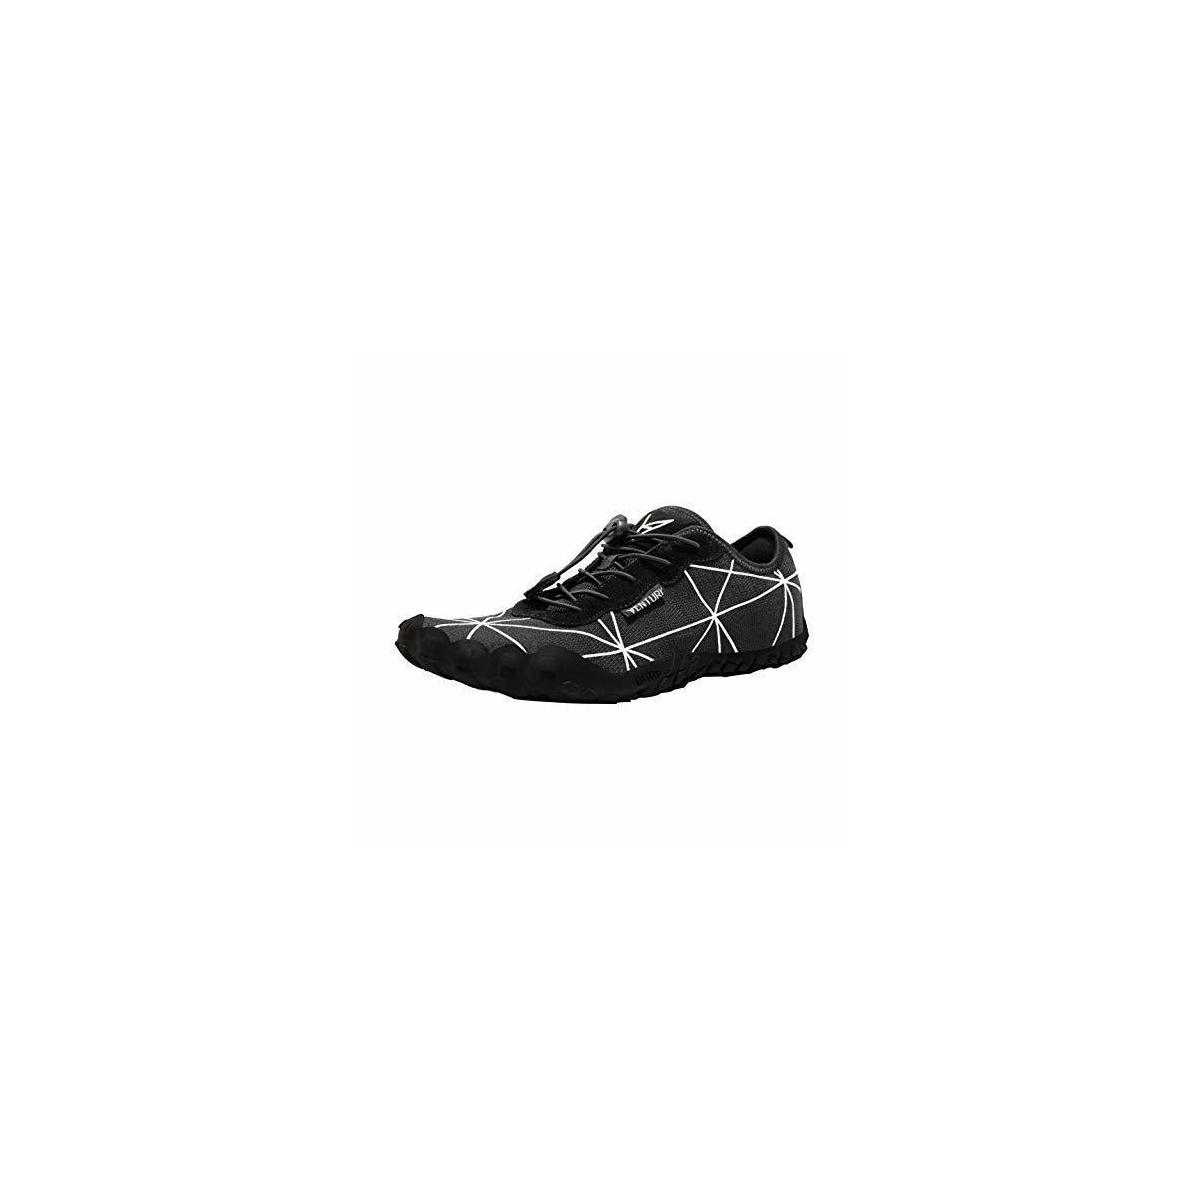 Ventury Zero Trail Running Shoes (All Sizes) - Please size up by one size